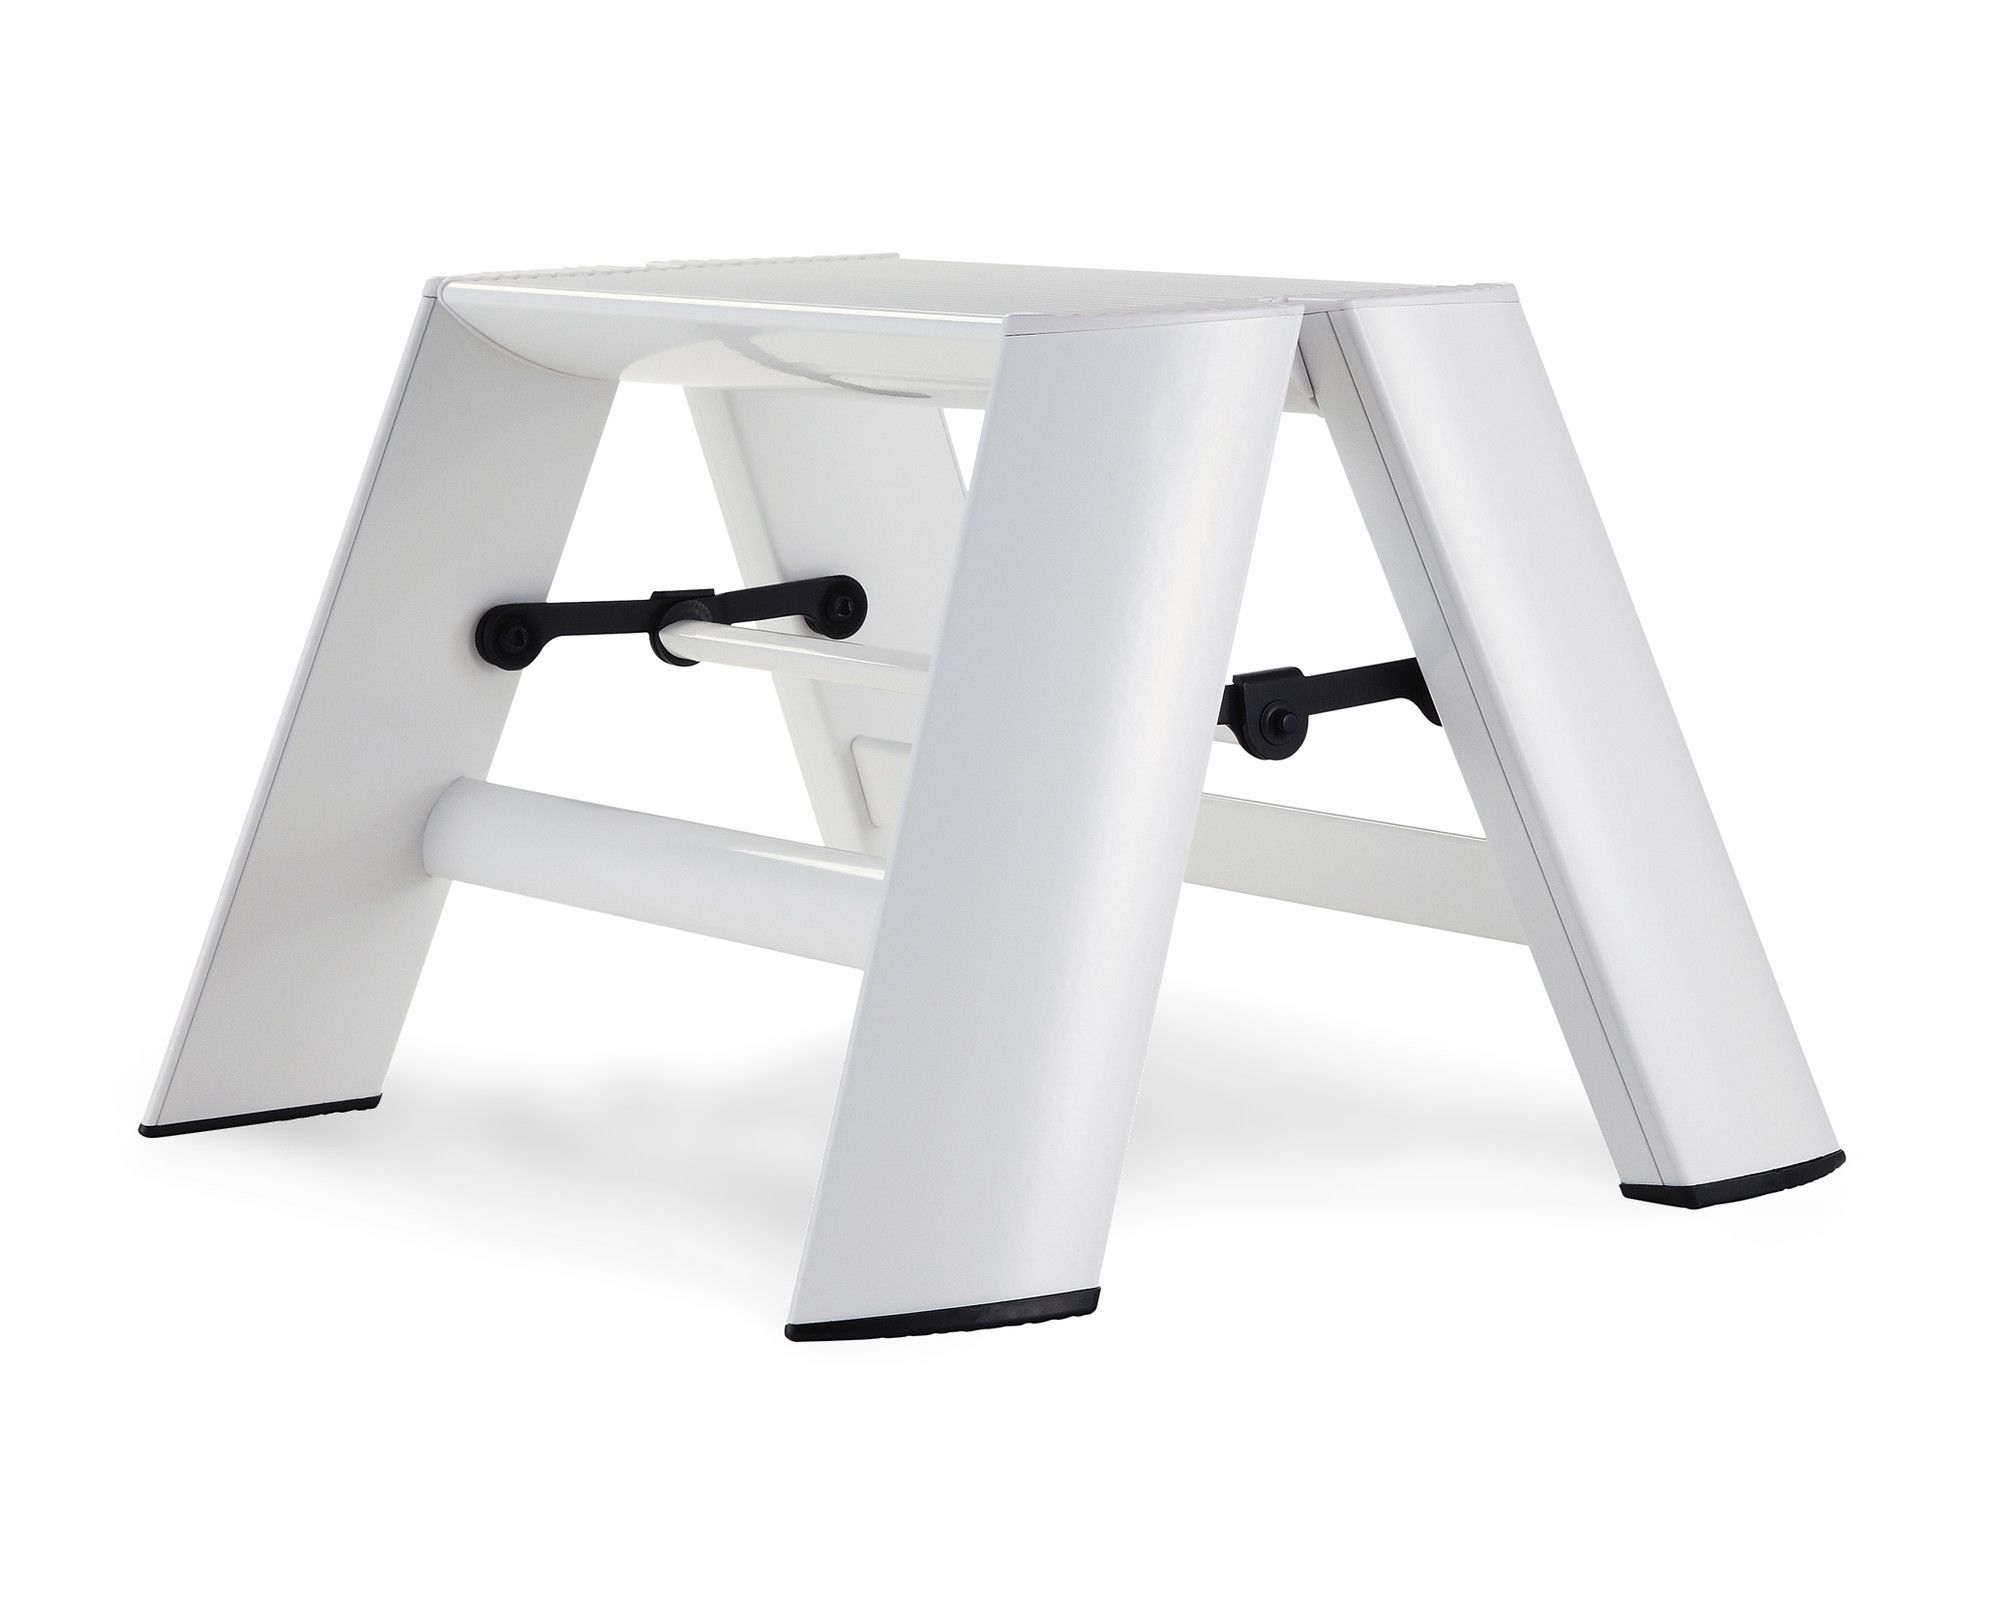 Pleasing 1 Step Aluminum Step Stool Products Stool Small Living Caraccident5 Cool Chair Designs And Ideas Caraccident5Info